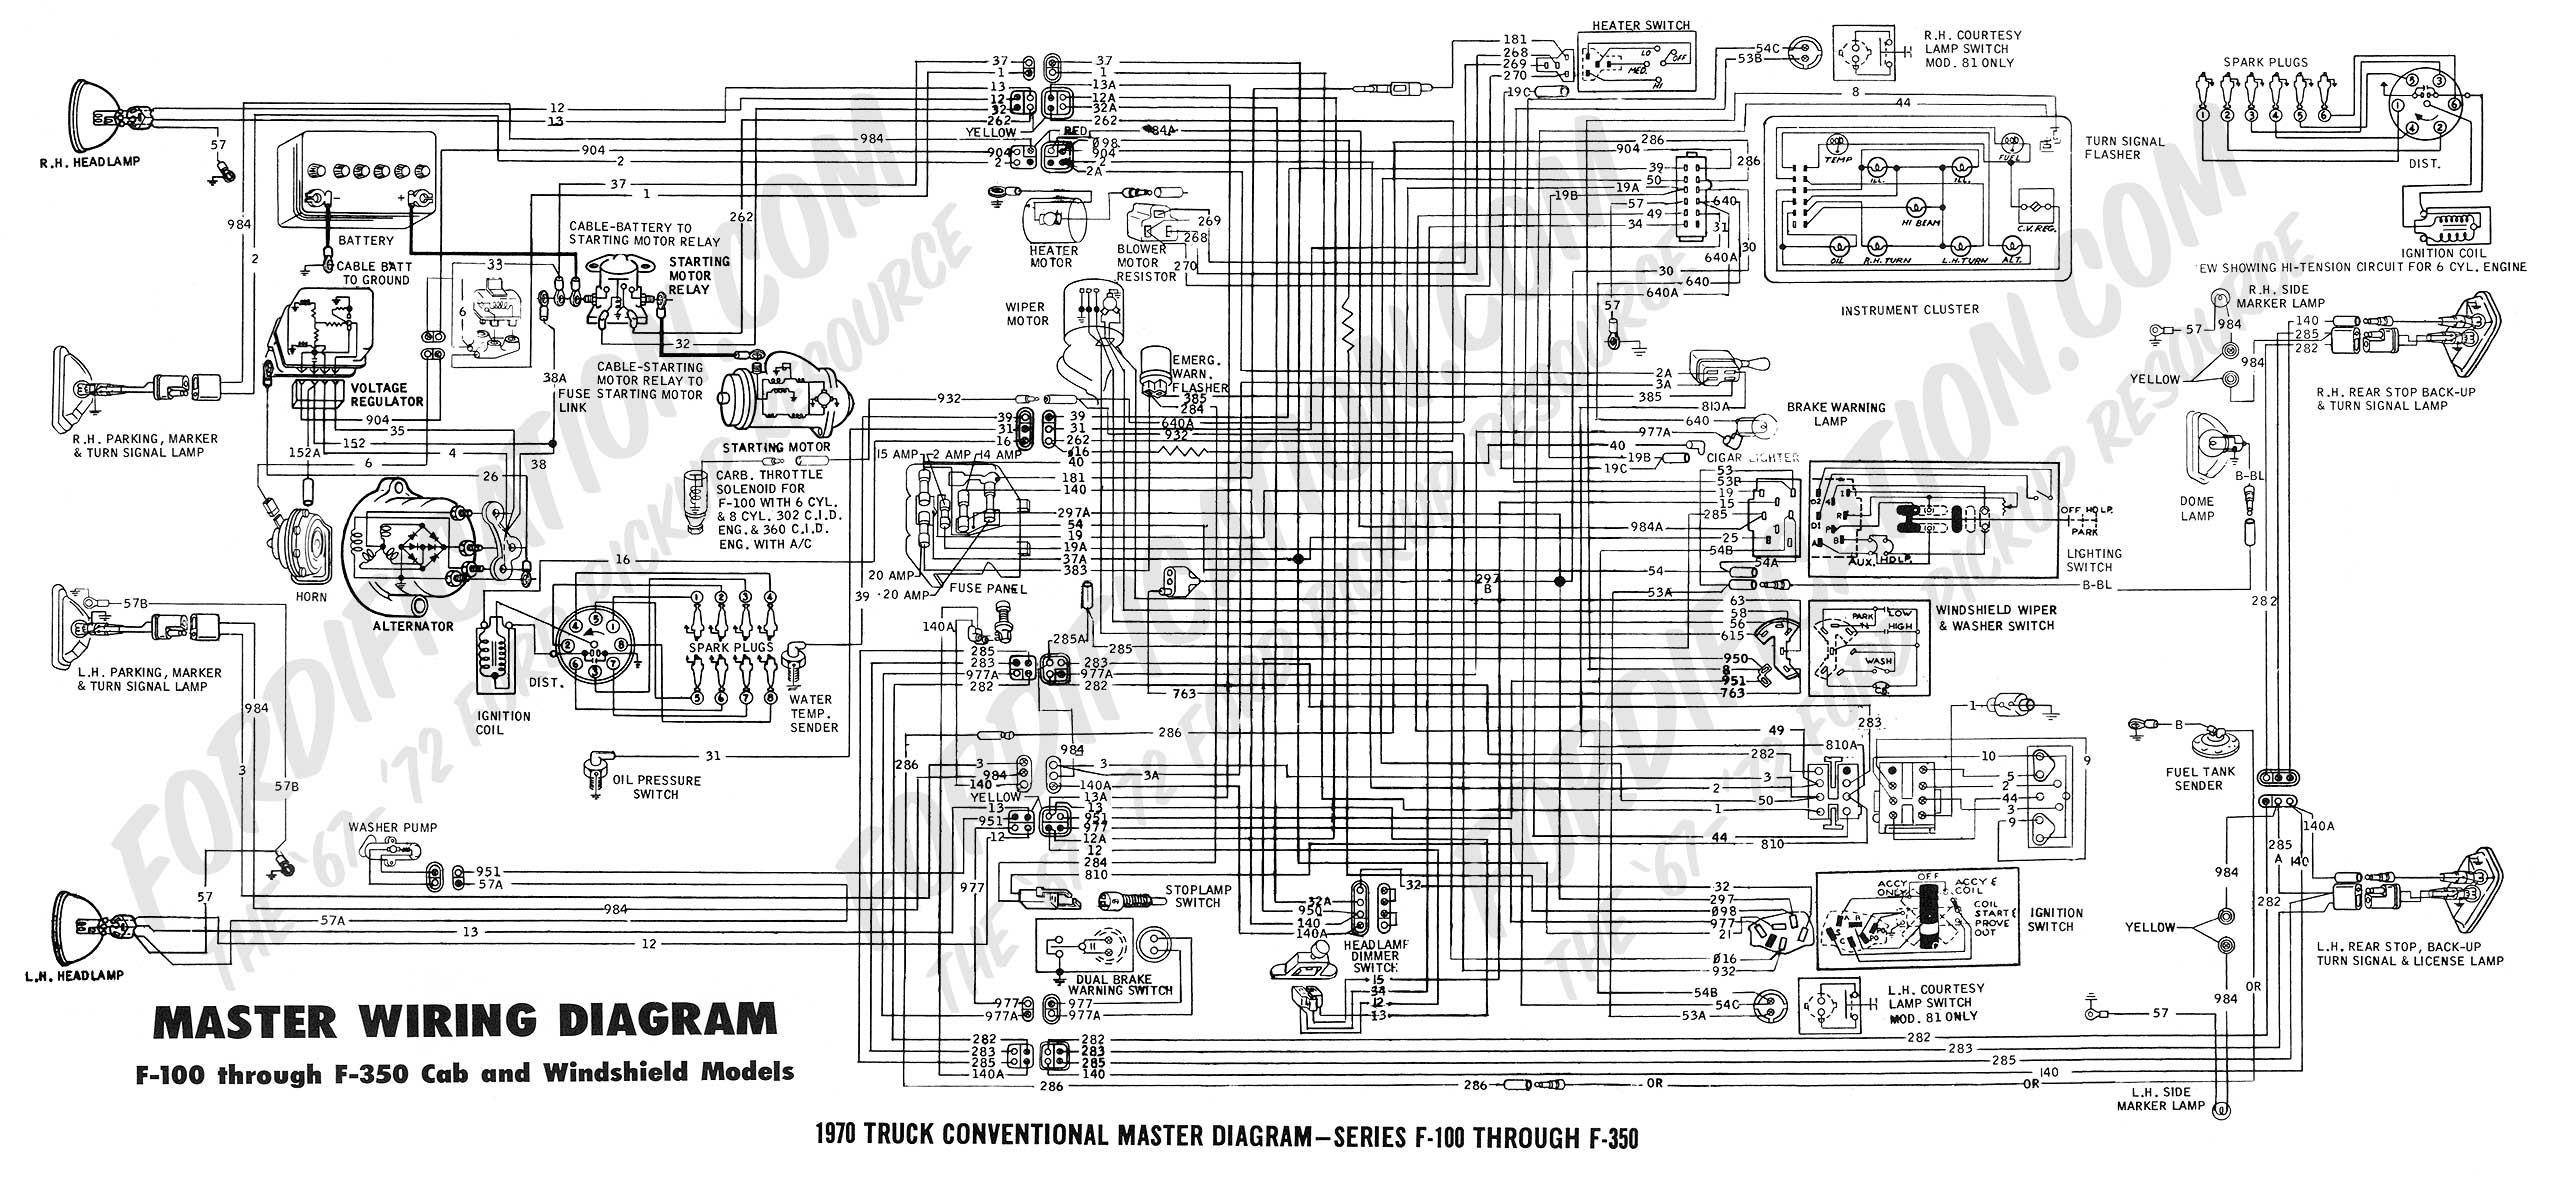 ford escape fuel injector wiring best wiring library2005 ford f350 wiring diagram simple wiring diagram rh 56 mara cujas de 2005 ford mustang